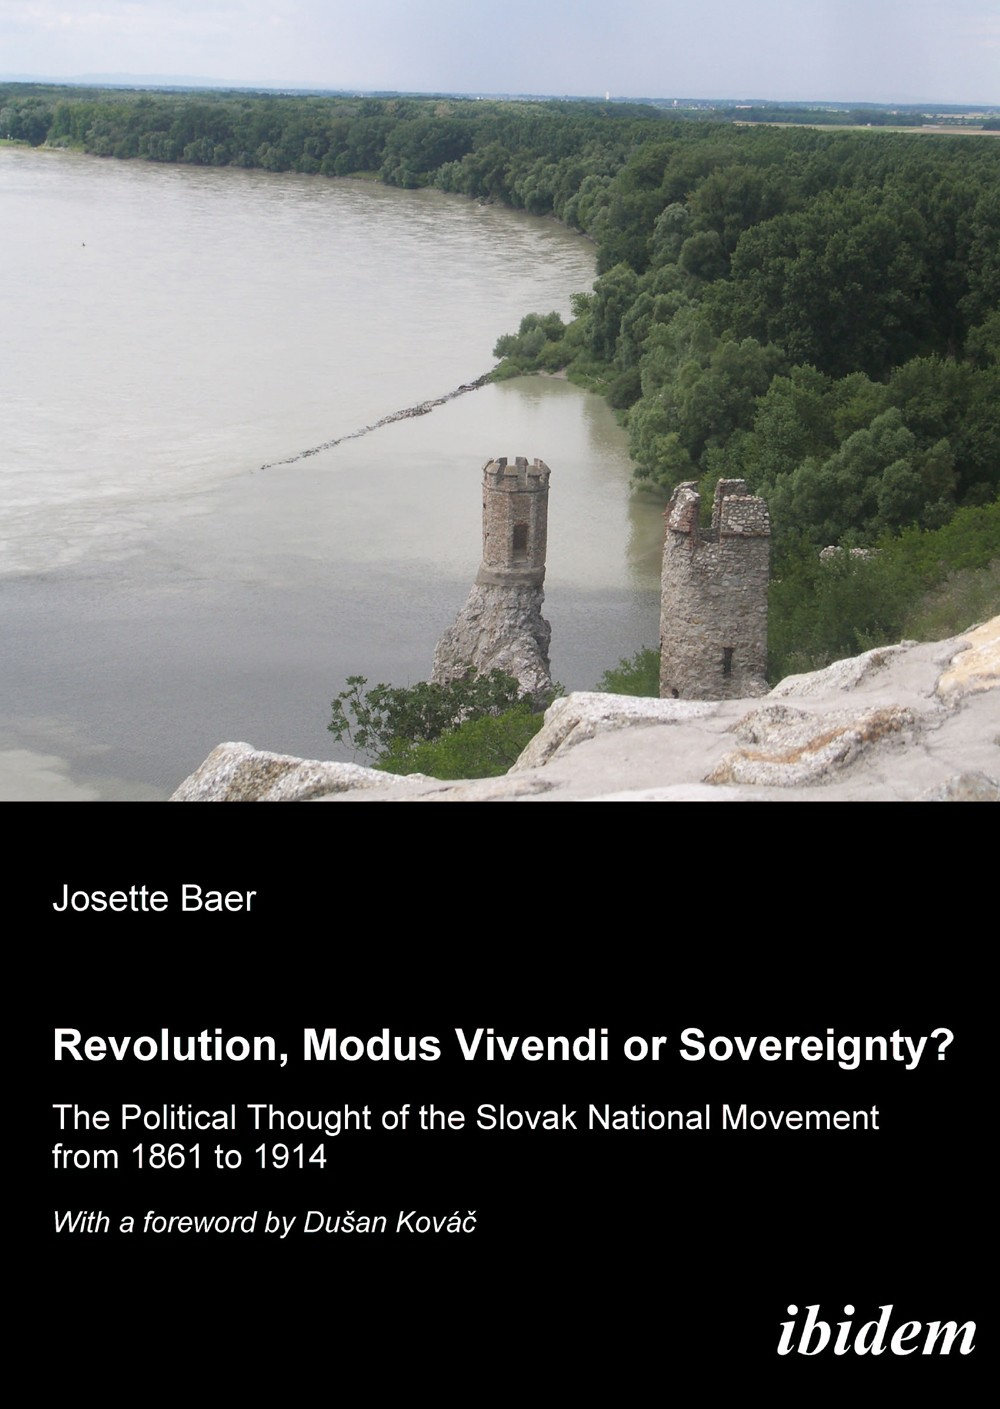 Revolution, modus vivendi or sovereignty? The political Thought of the Slovak national movement from 1861 to 1914